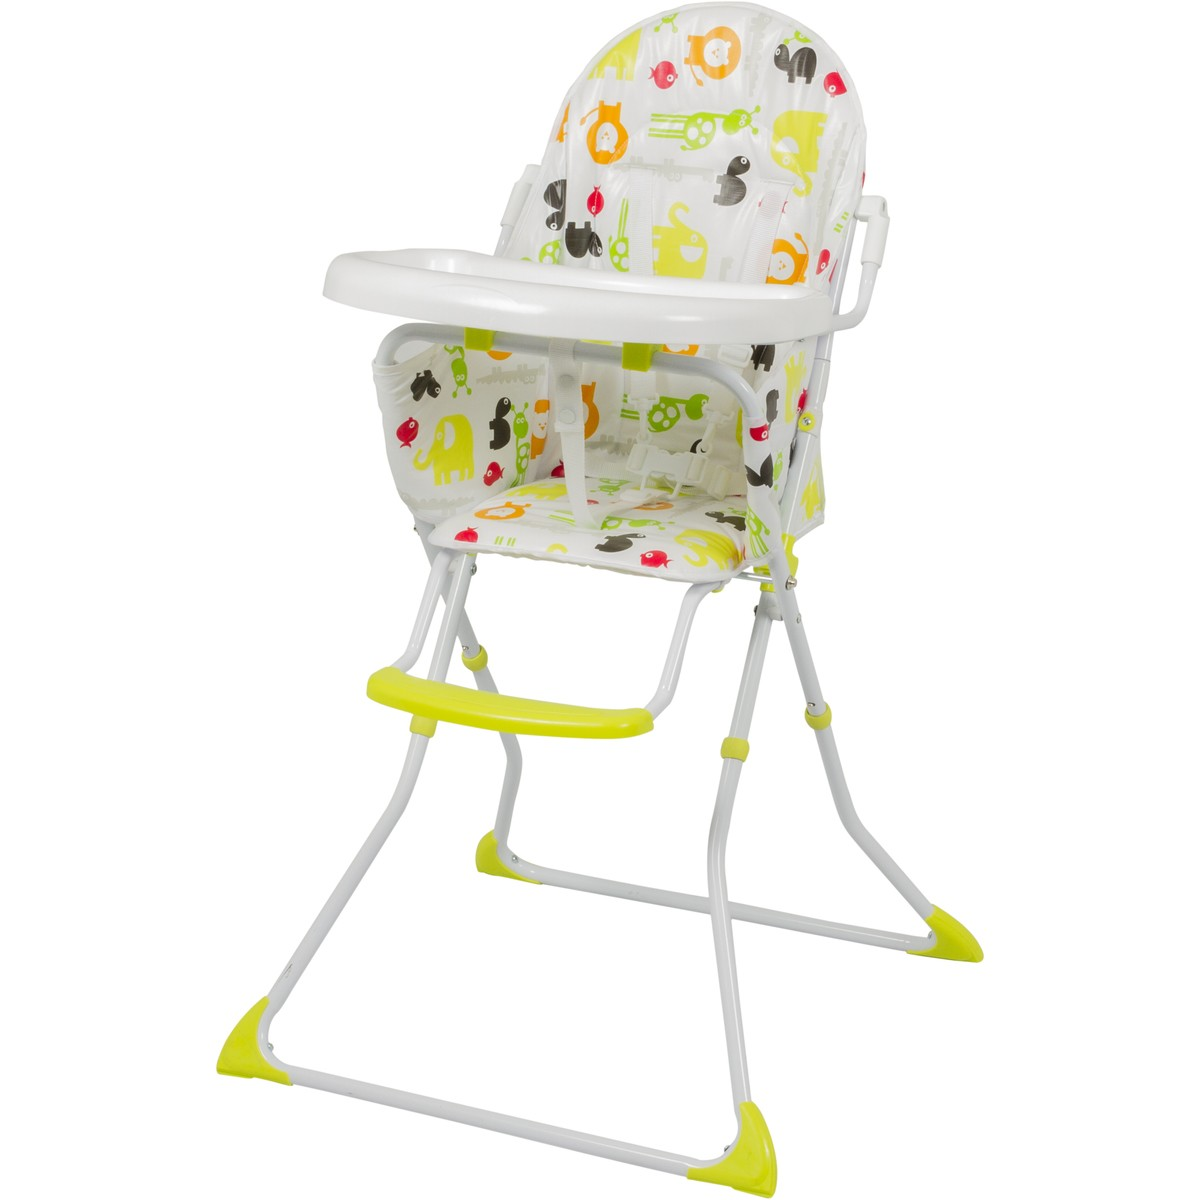 High Chairs Dymples High Chair Amazon Animals Big W